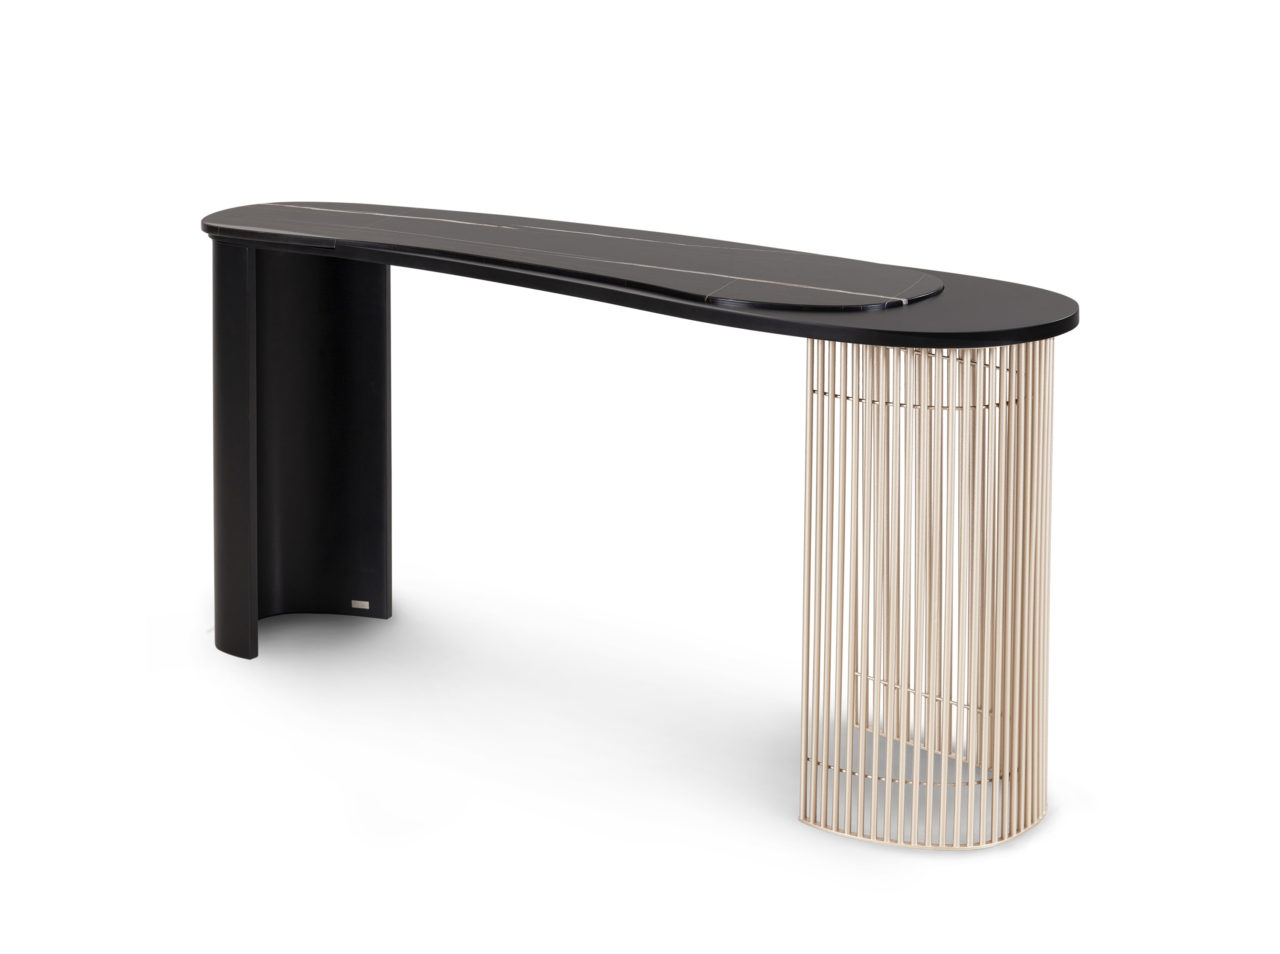 consoles Consoles – An Accent table that makes the difference image 1